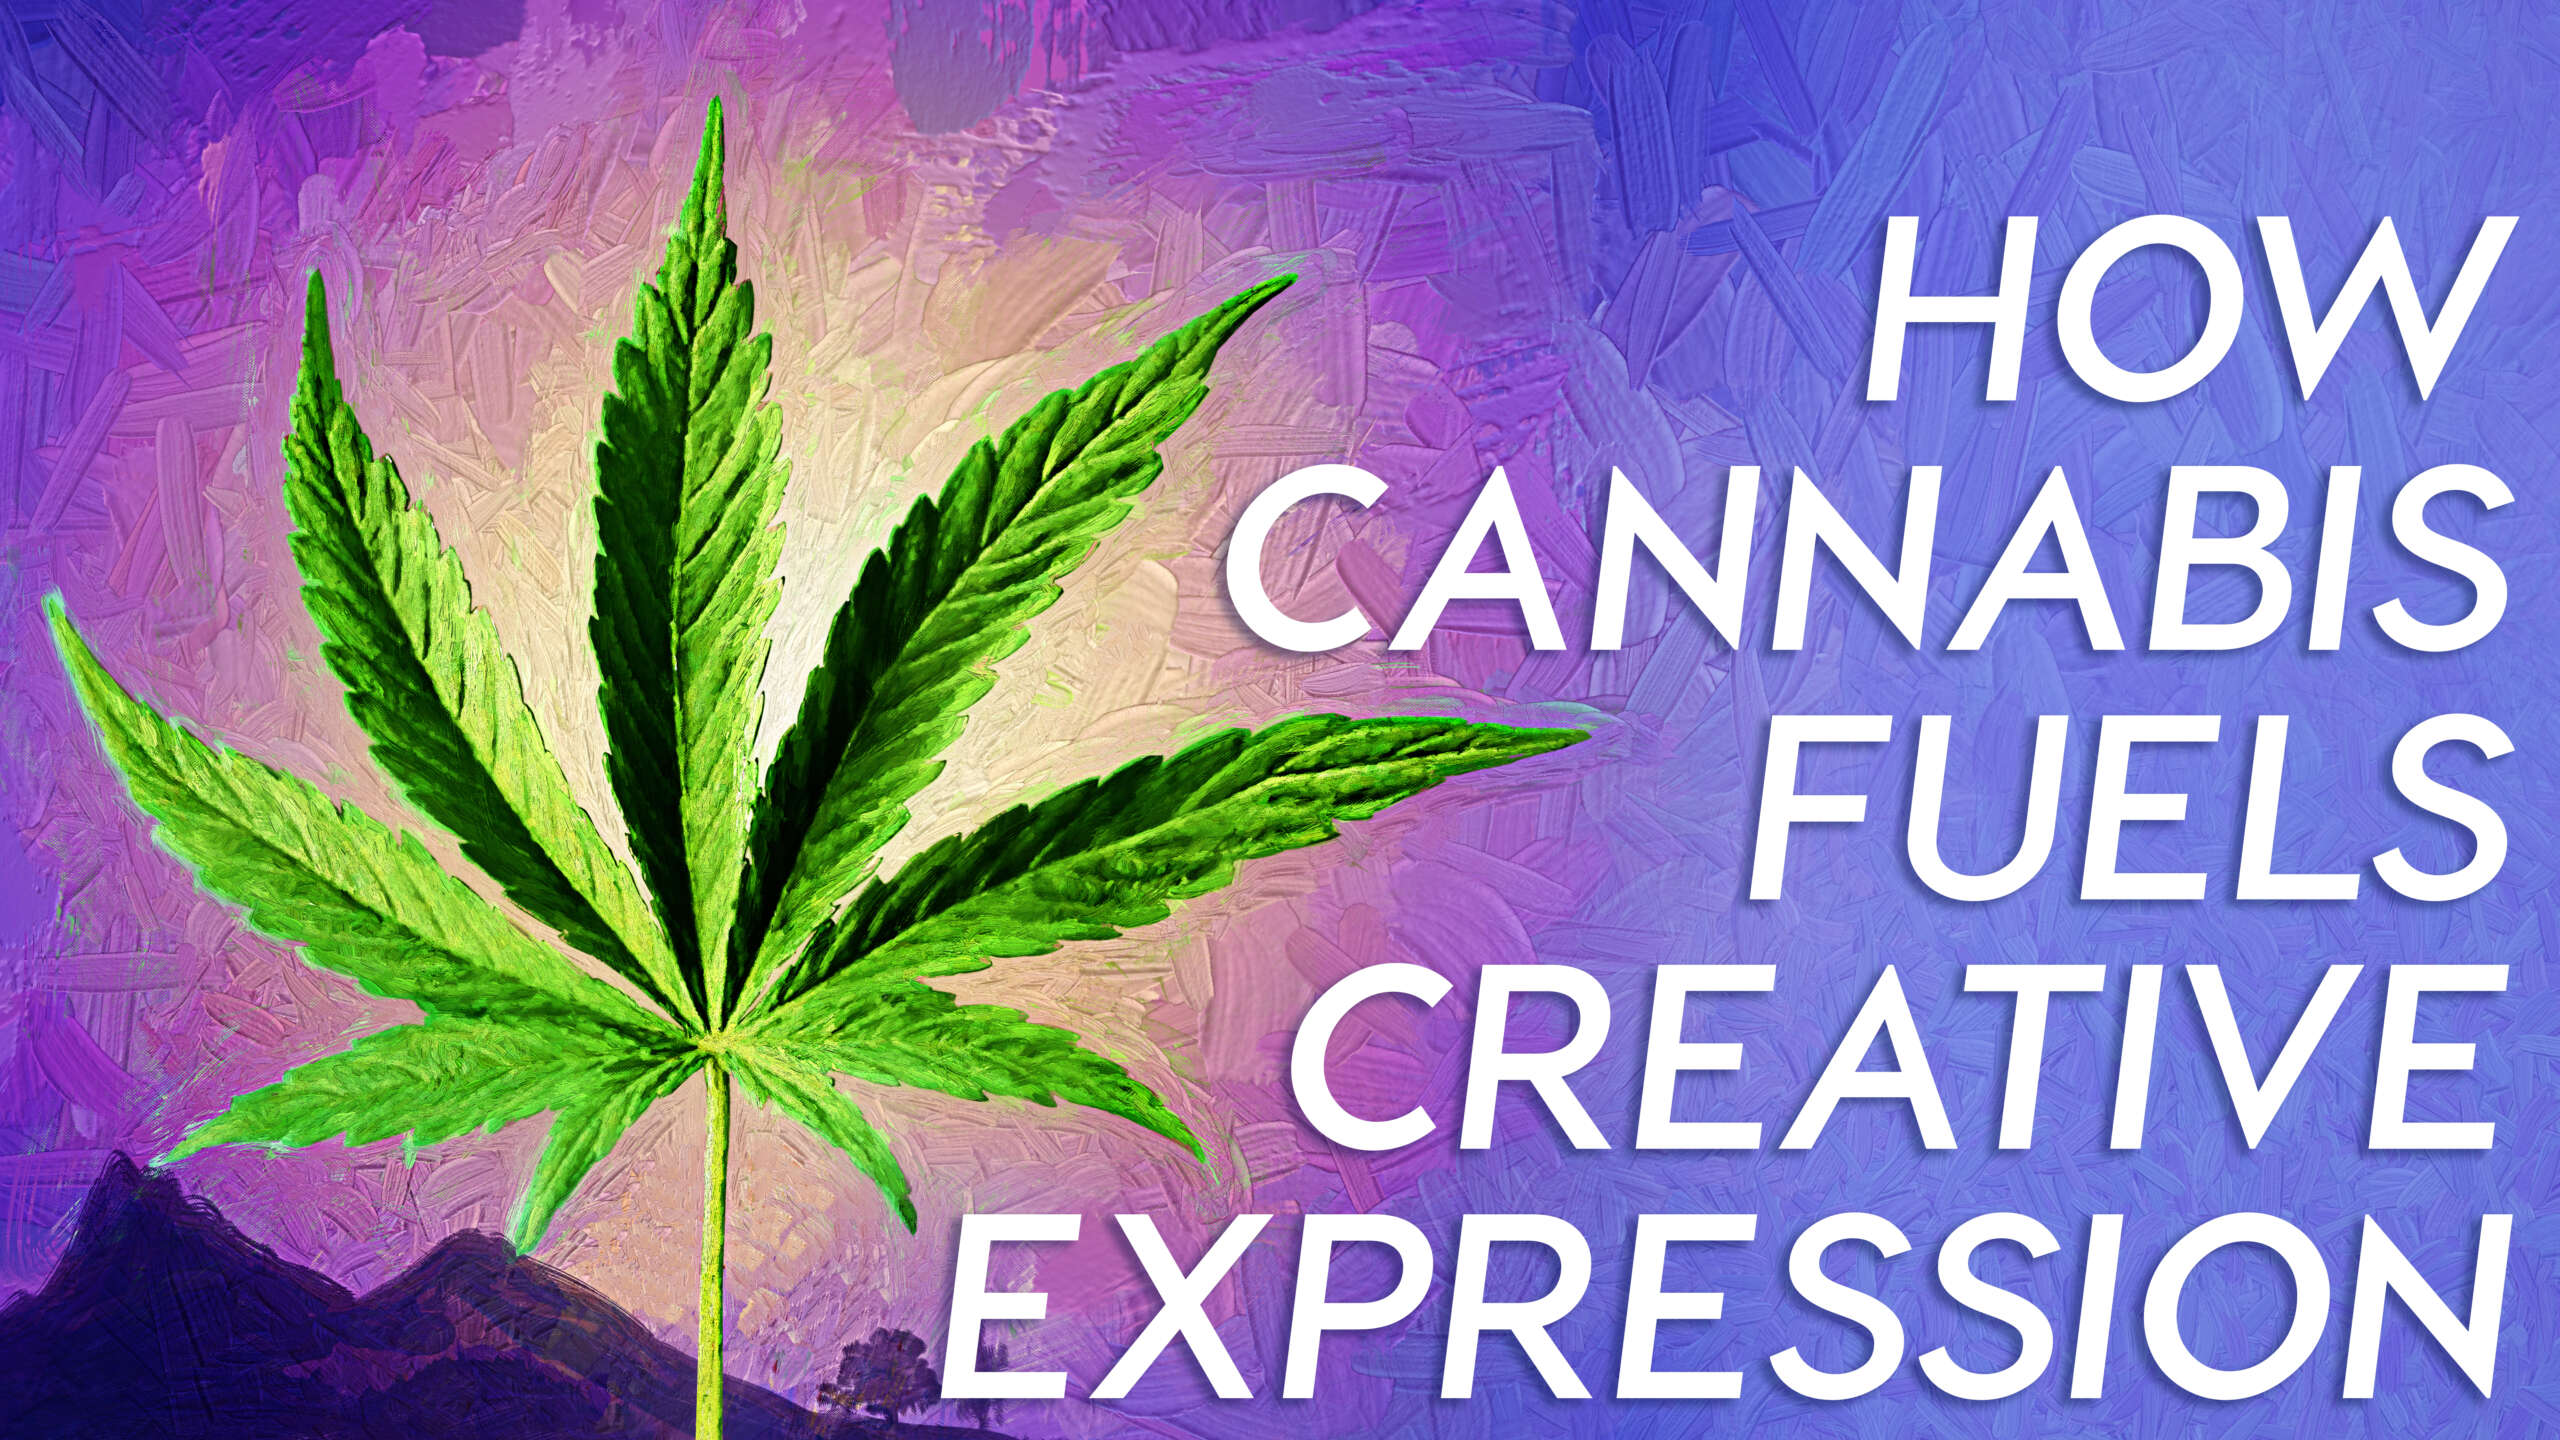 Examining how cannabinoids effect creative expression.